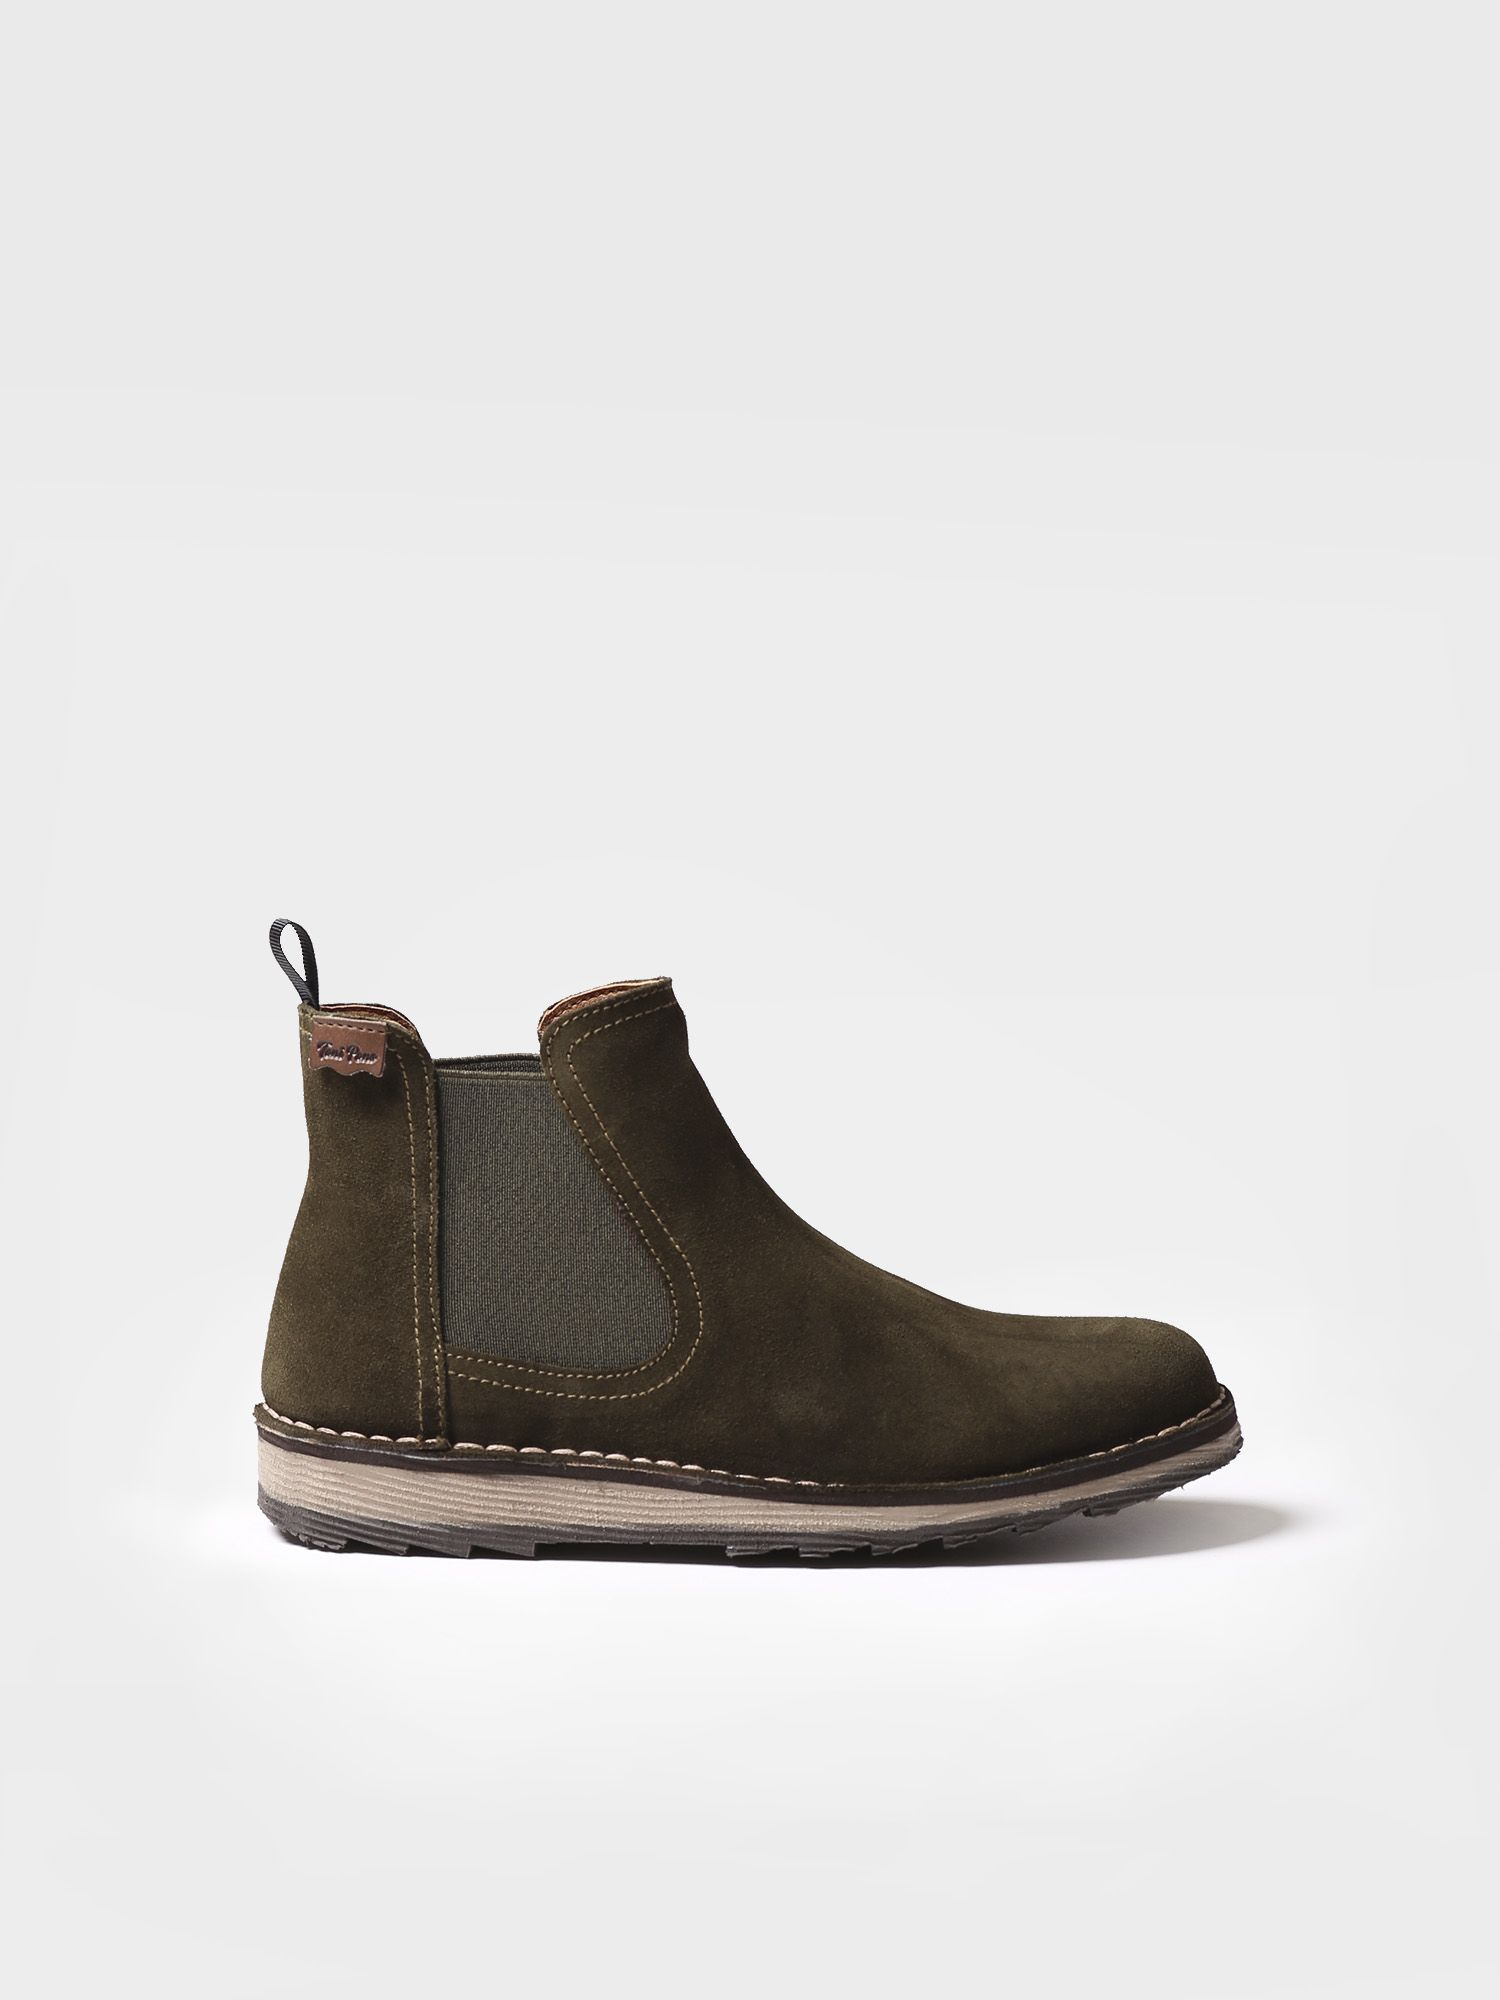 Ankle boot for women made of suede - ISONA-SY